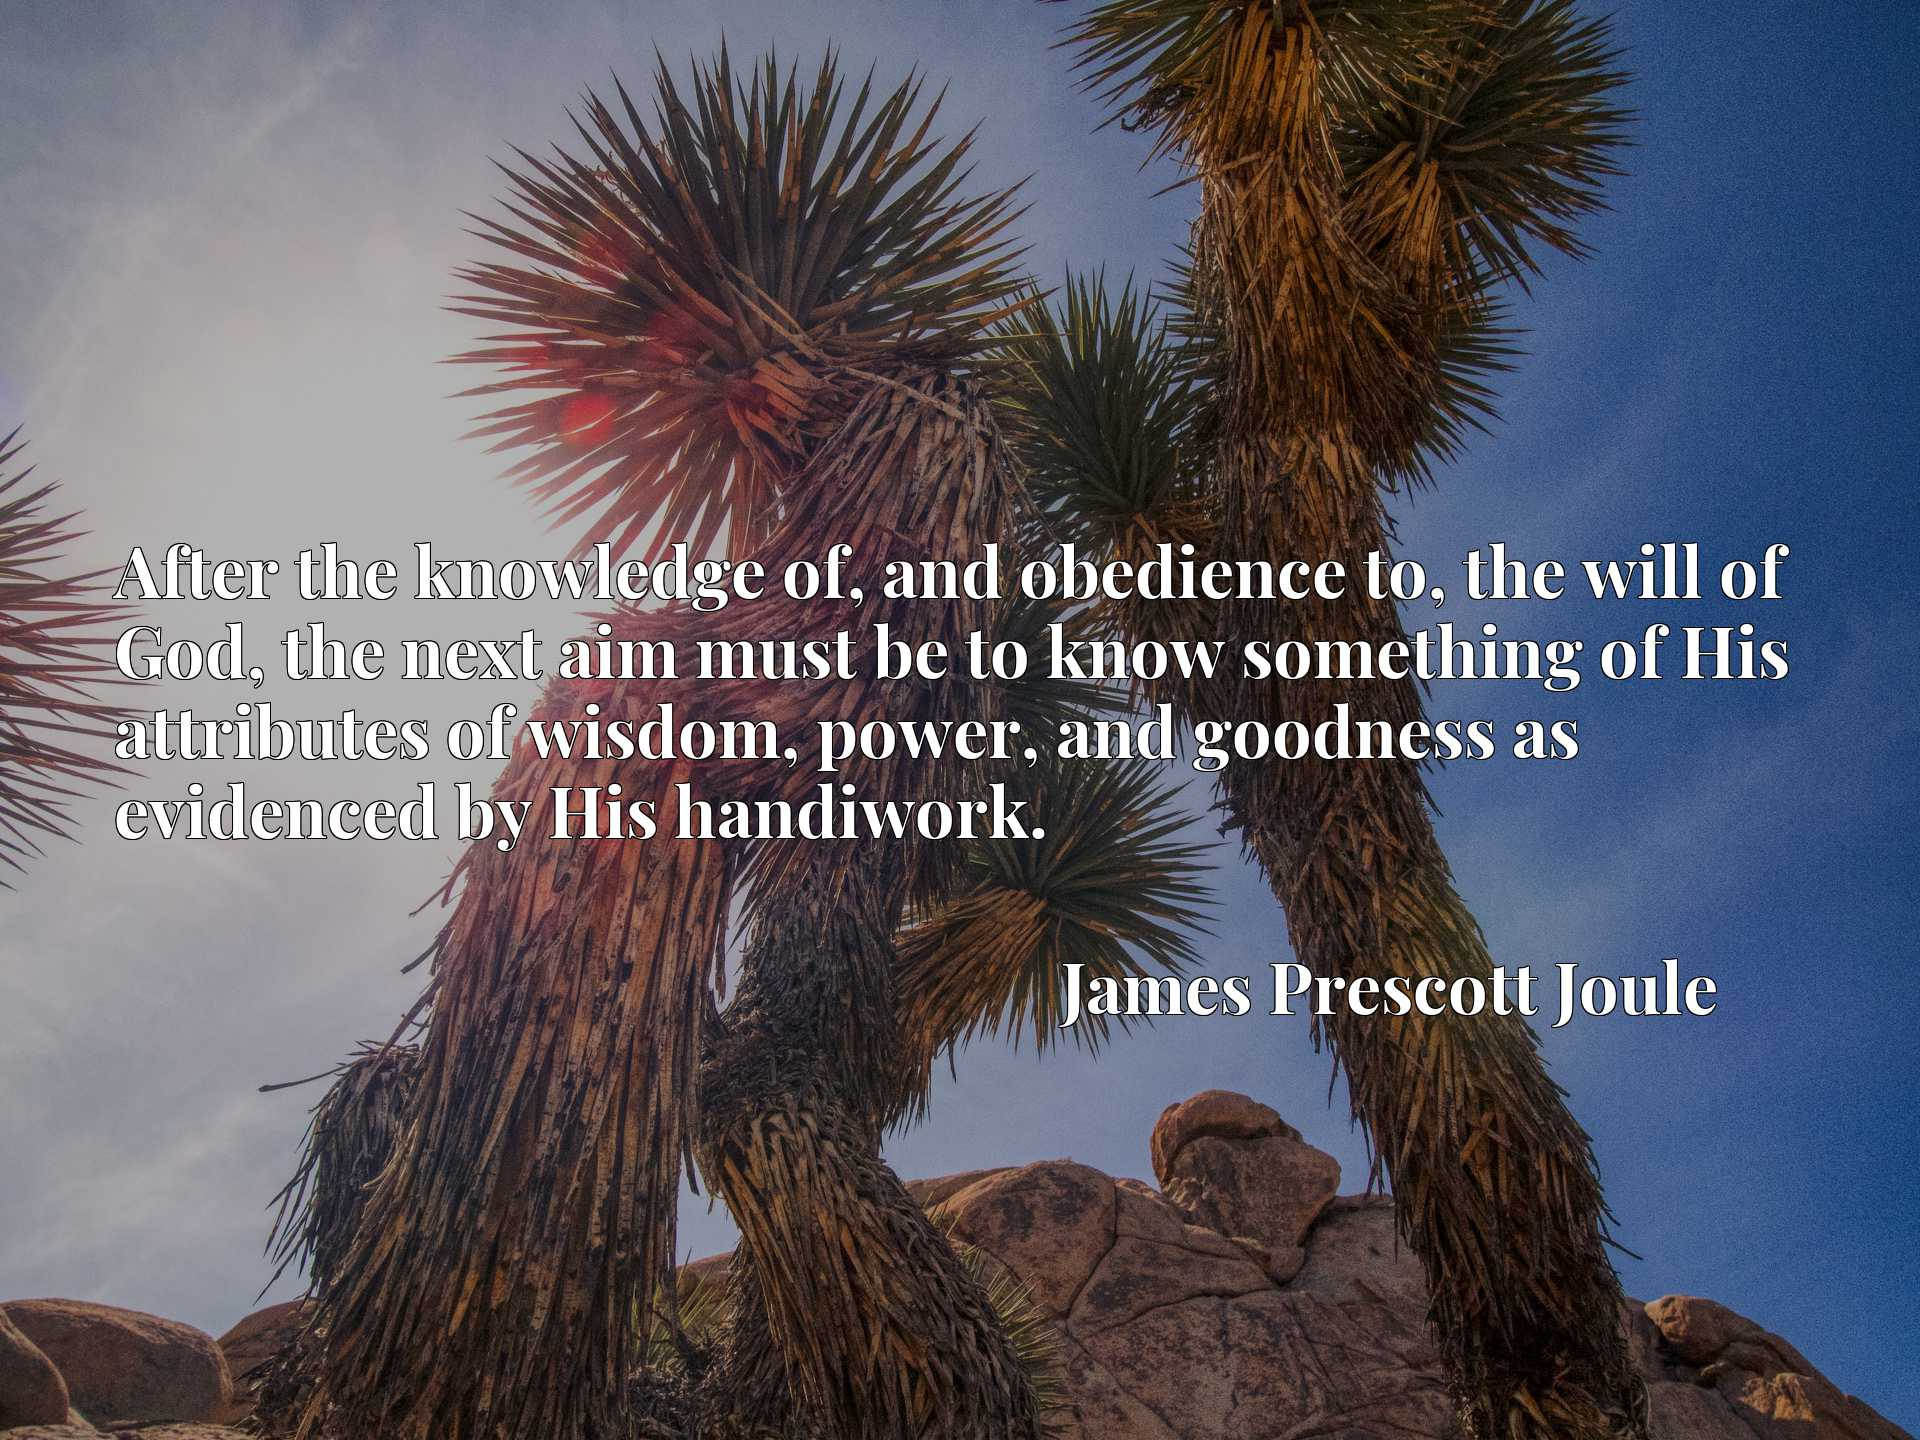 Quote Picture :After the knowledge of, and obedience to, the will of God, the next aim must be to know something of His attributes of wisdom, power, and goodness as evidenced by His handiwork.